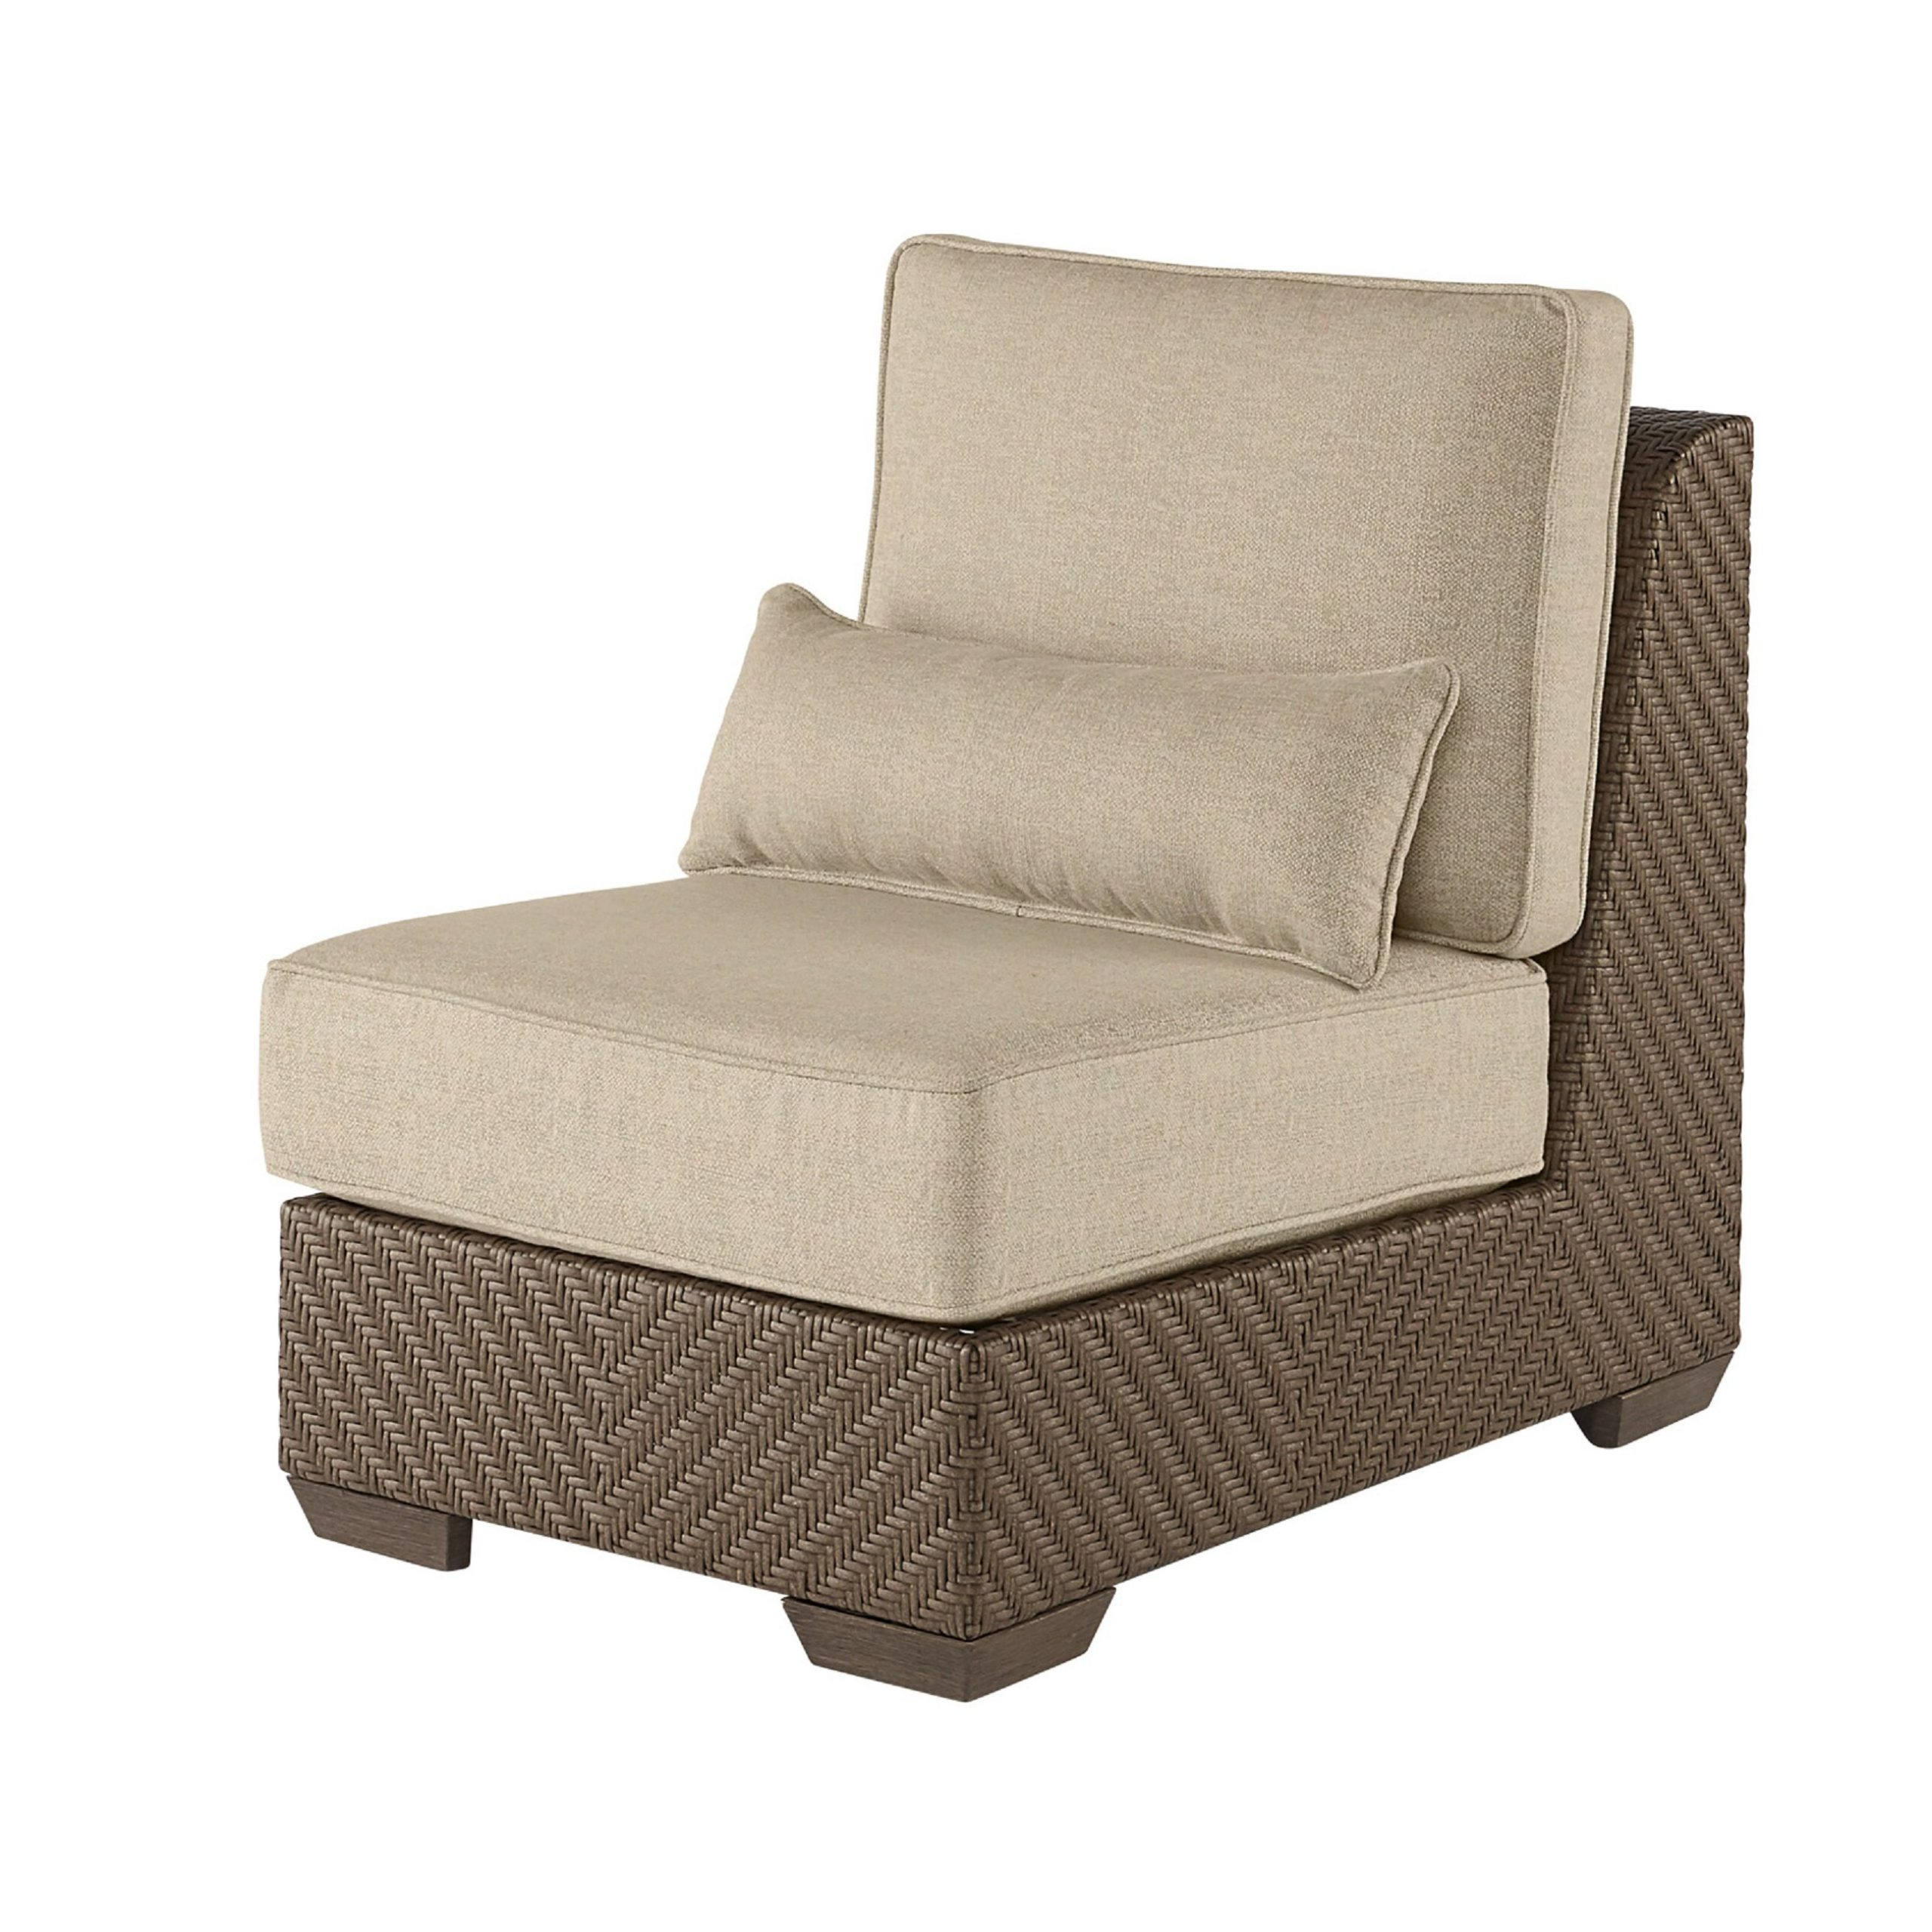 Descargar Pdf Astrid Wicker Patio Chair With Cushion Regarding Most Recent Astrid Wicker Patio Sofas With Cushions (View 3 of 25)